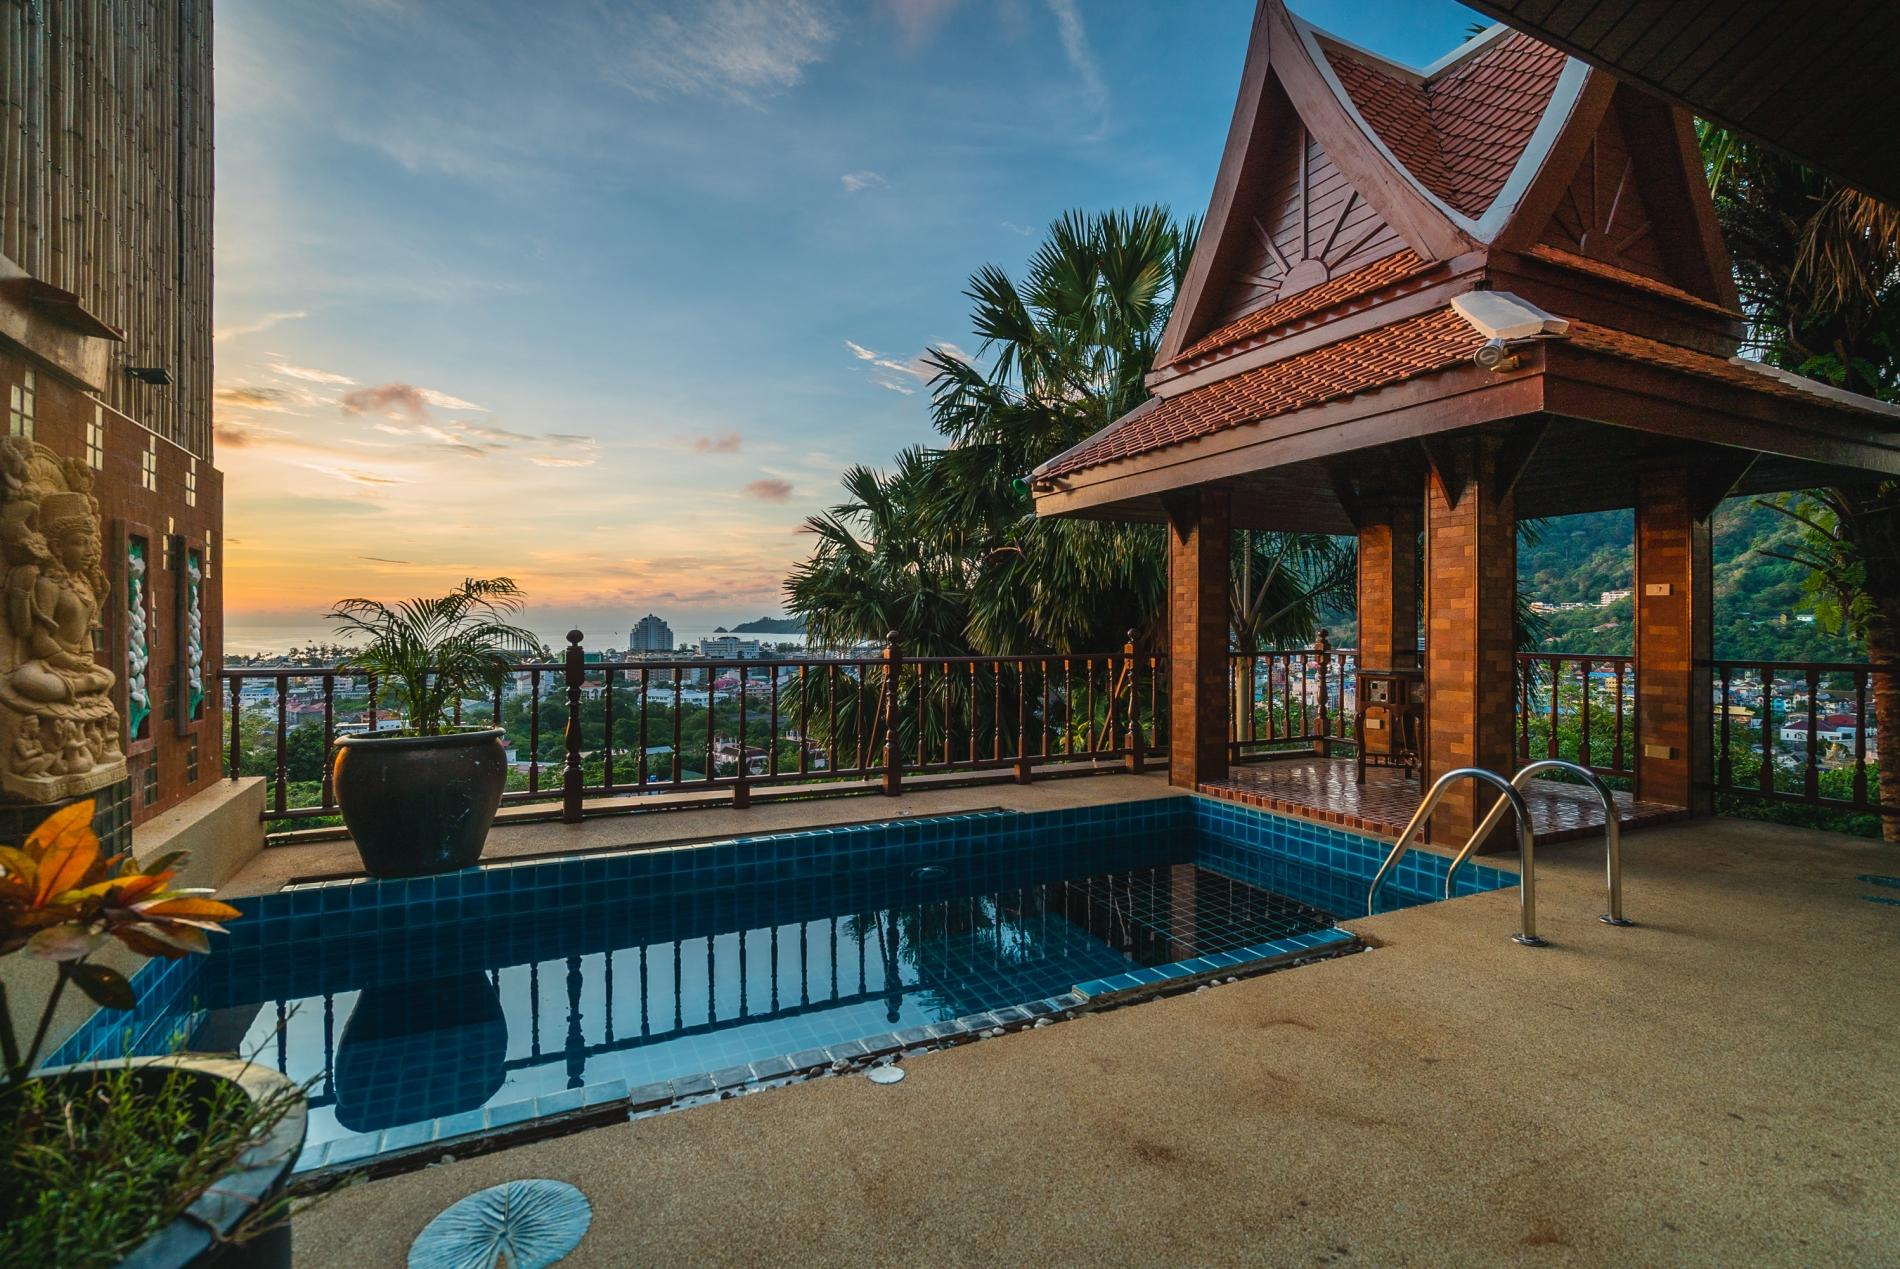 Apartment 50pee - Seaview pool villa in Patong  boxing bag  foosball table  darts and fun  photo 20176595